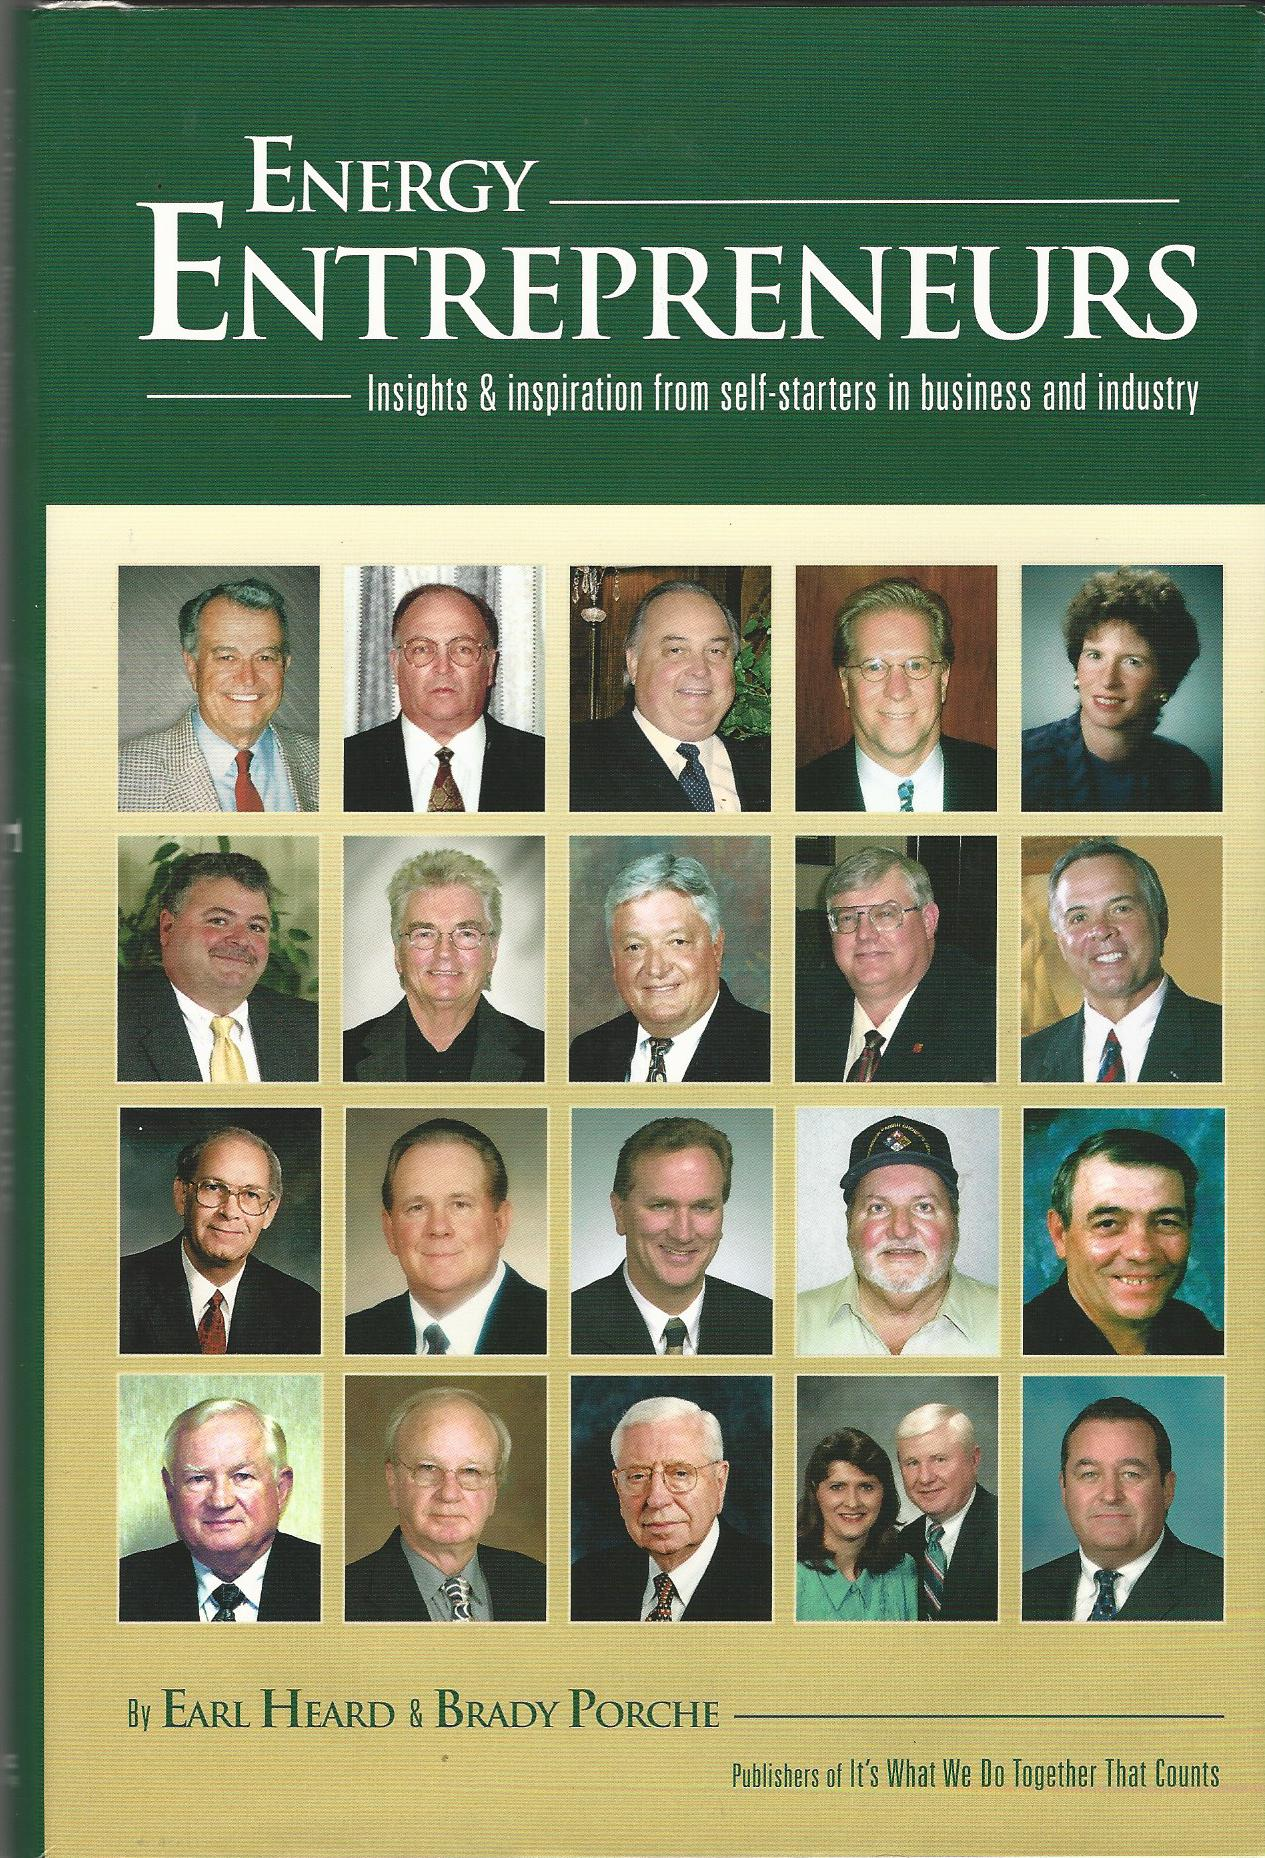 Image for Energy Entrepreneurs: Insights & Inspiration from Self-Starters in Business and Industry